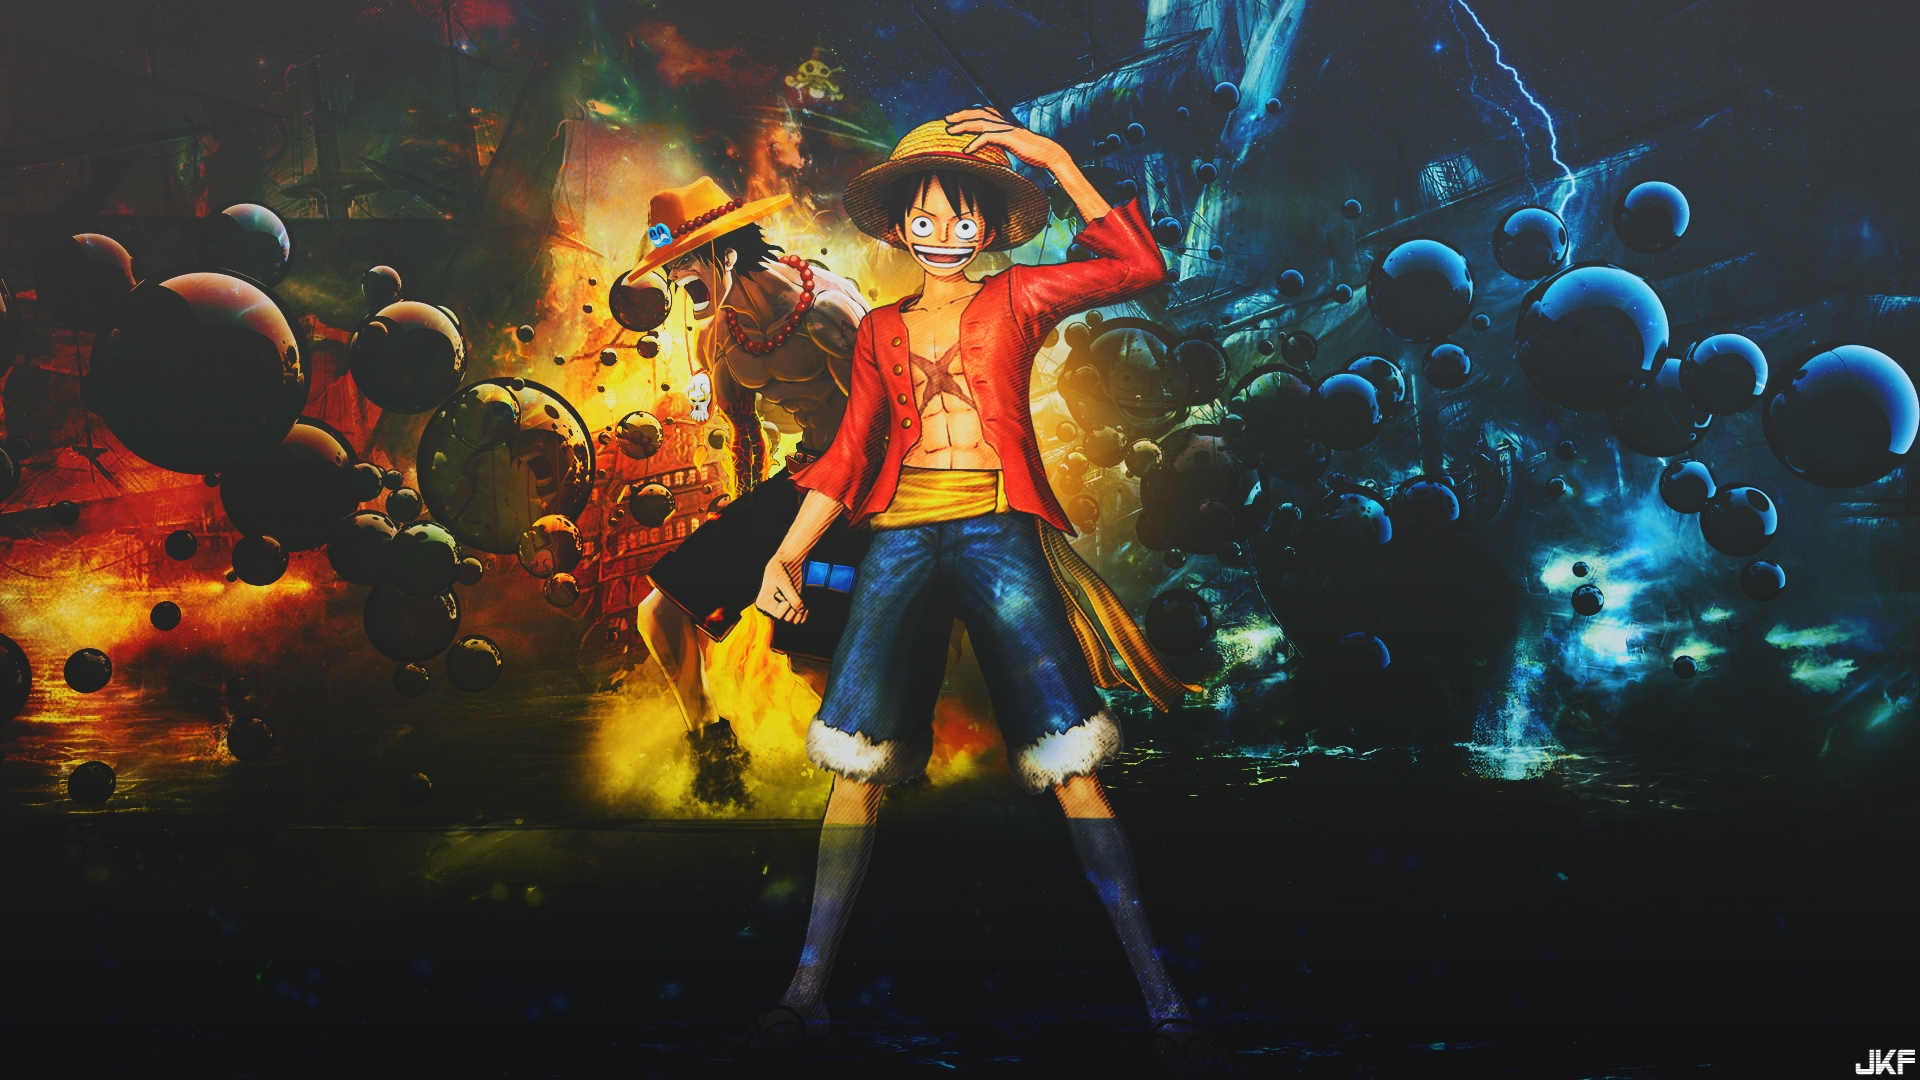 luffy_and_ace_by_dinocojv-d8zmfz9.jpg